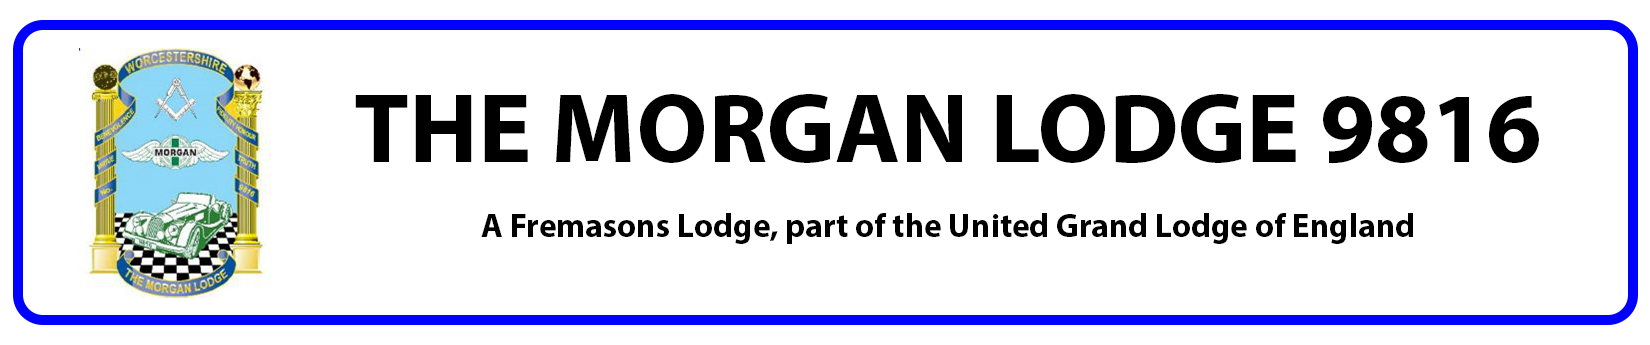 The Morgan Lodge 9816